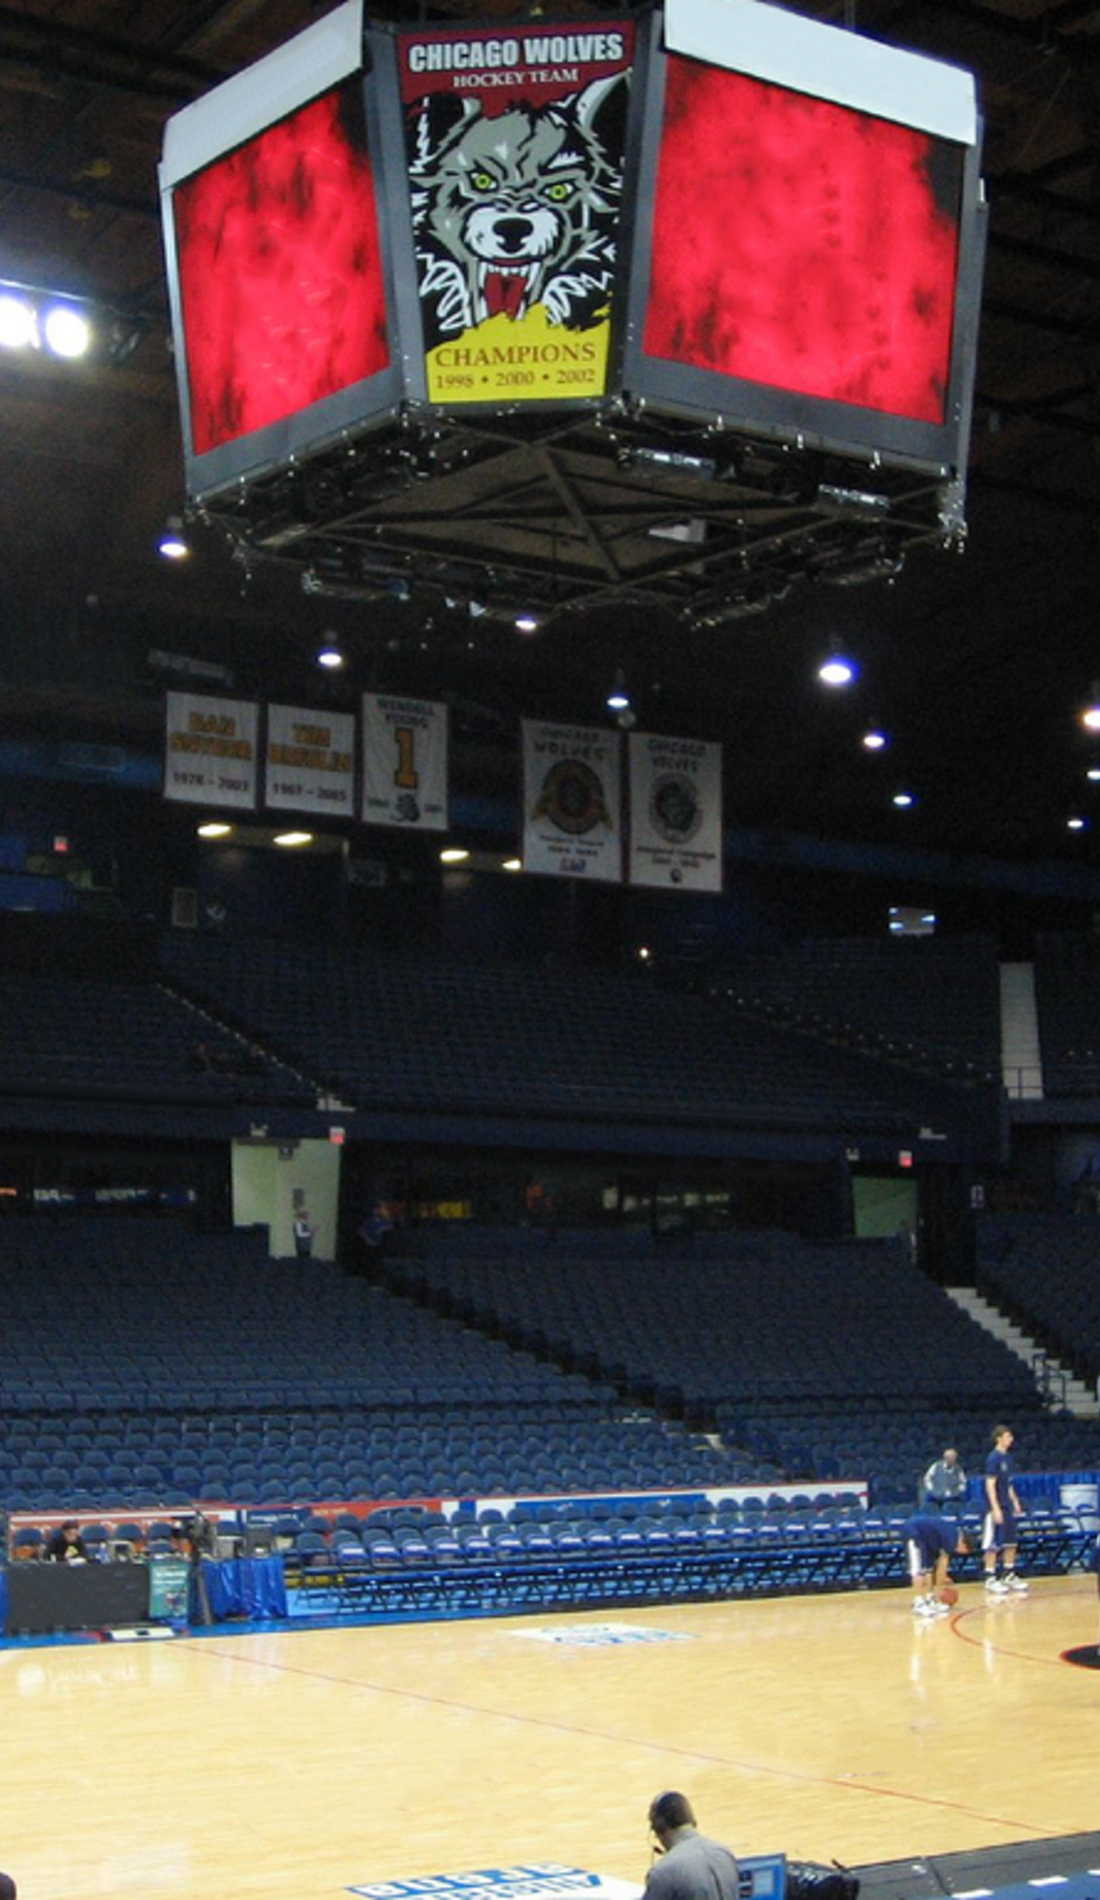 A DePaul Blue Demons Basketball live event